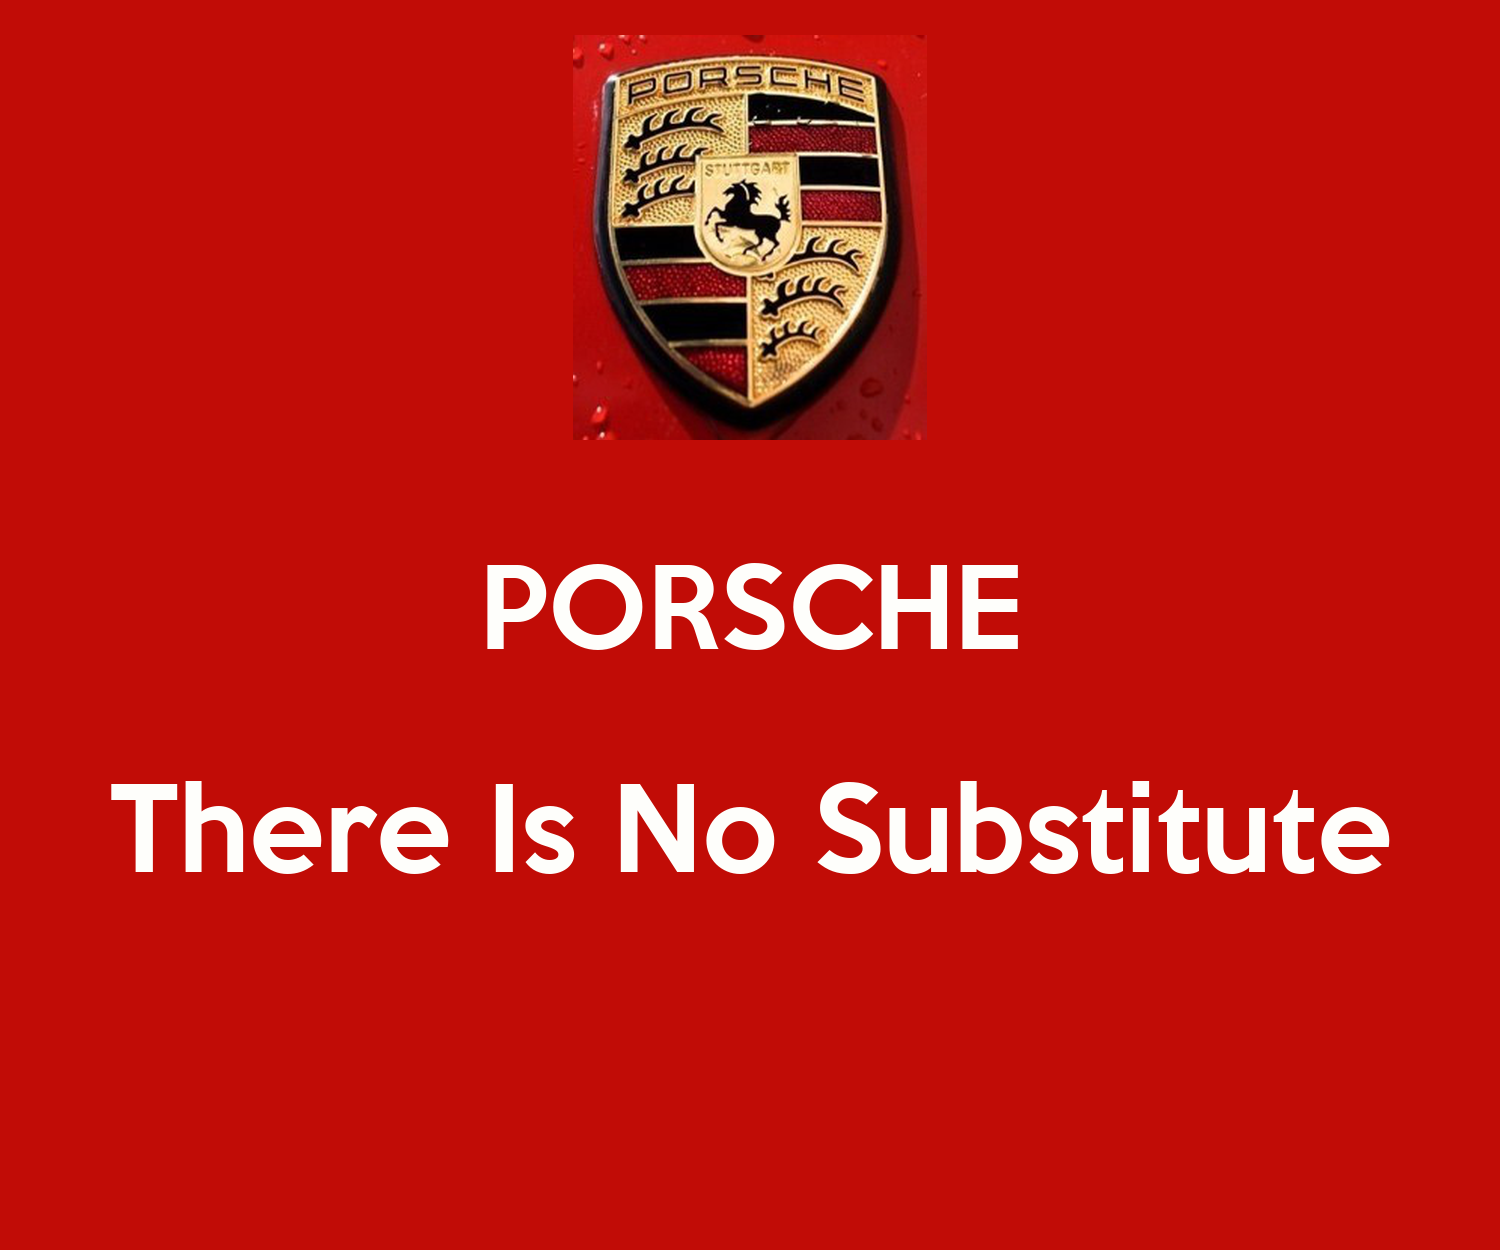 Porsche There Is No Substitute Poster Davers Keep Calm